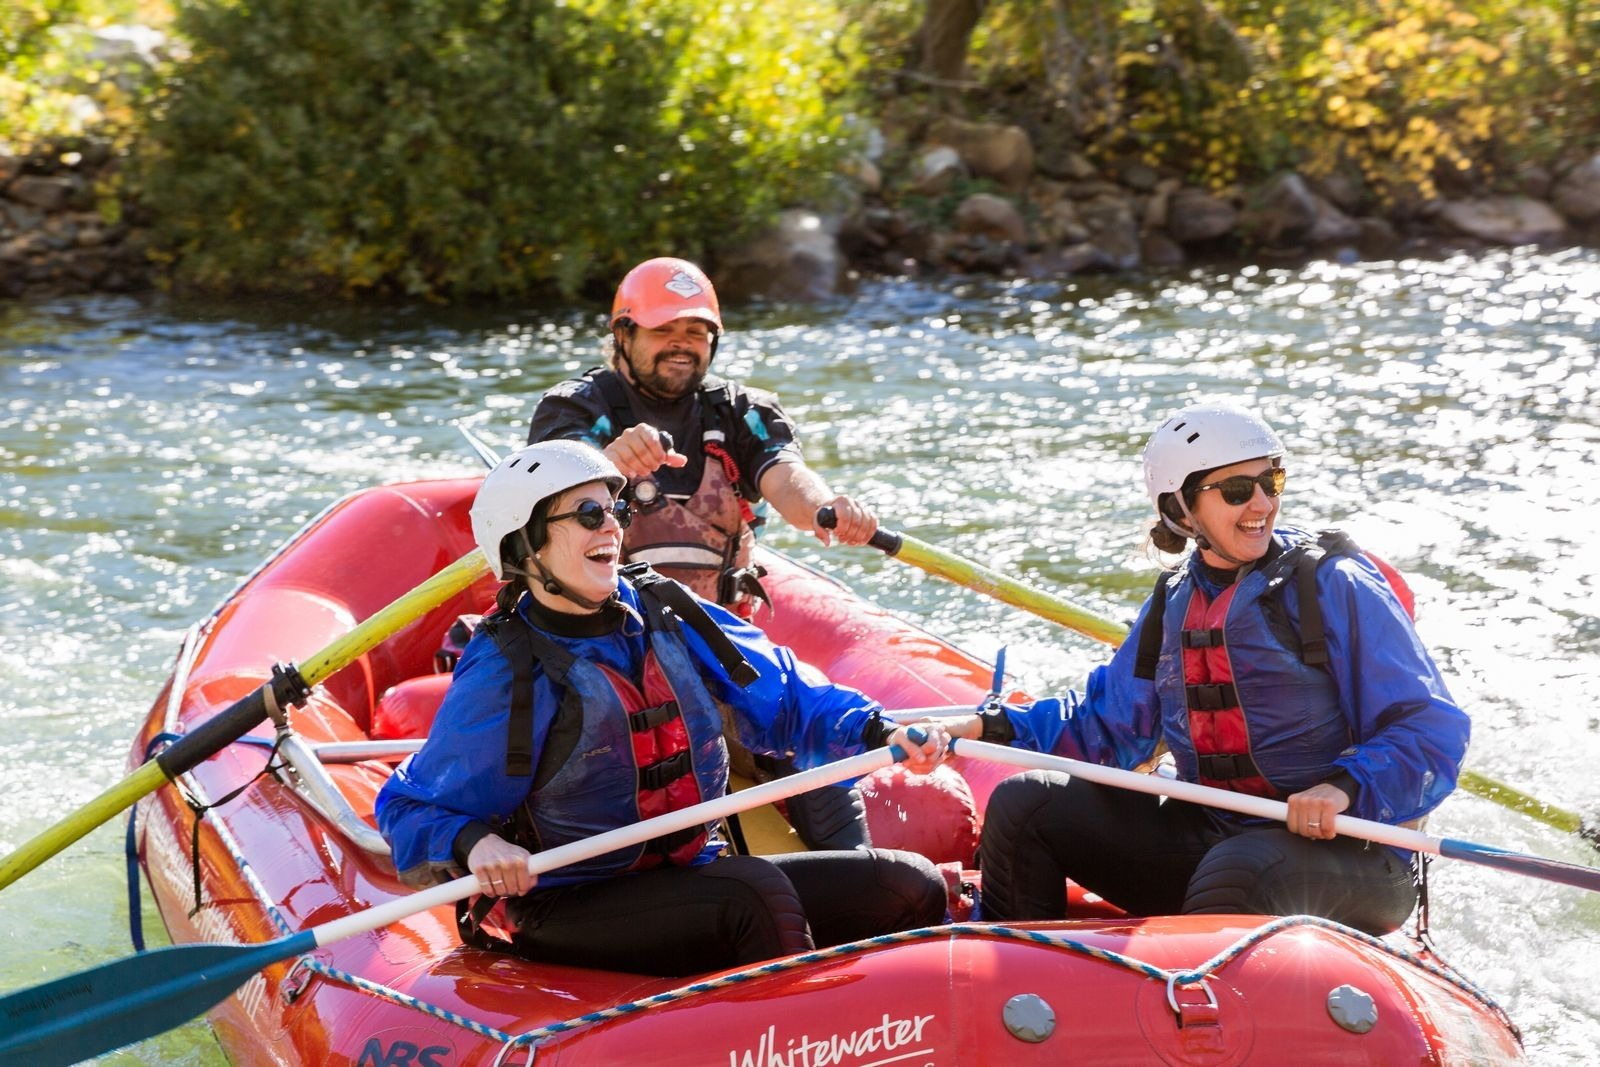 Whitewater rafting in Coloma, California